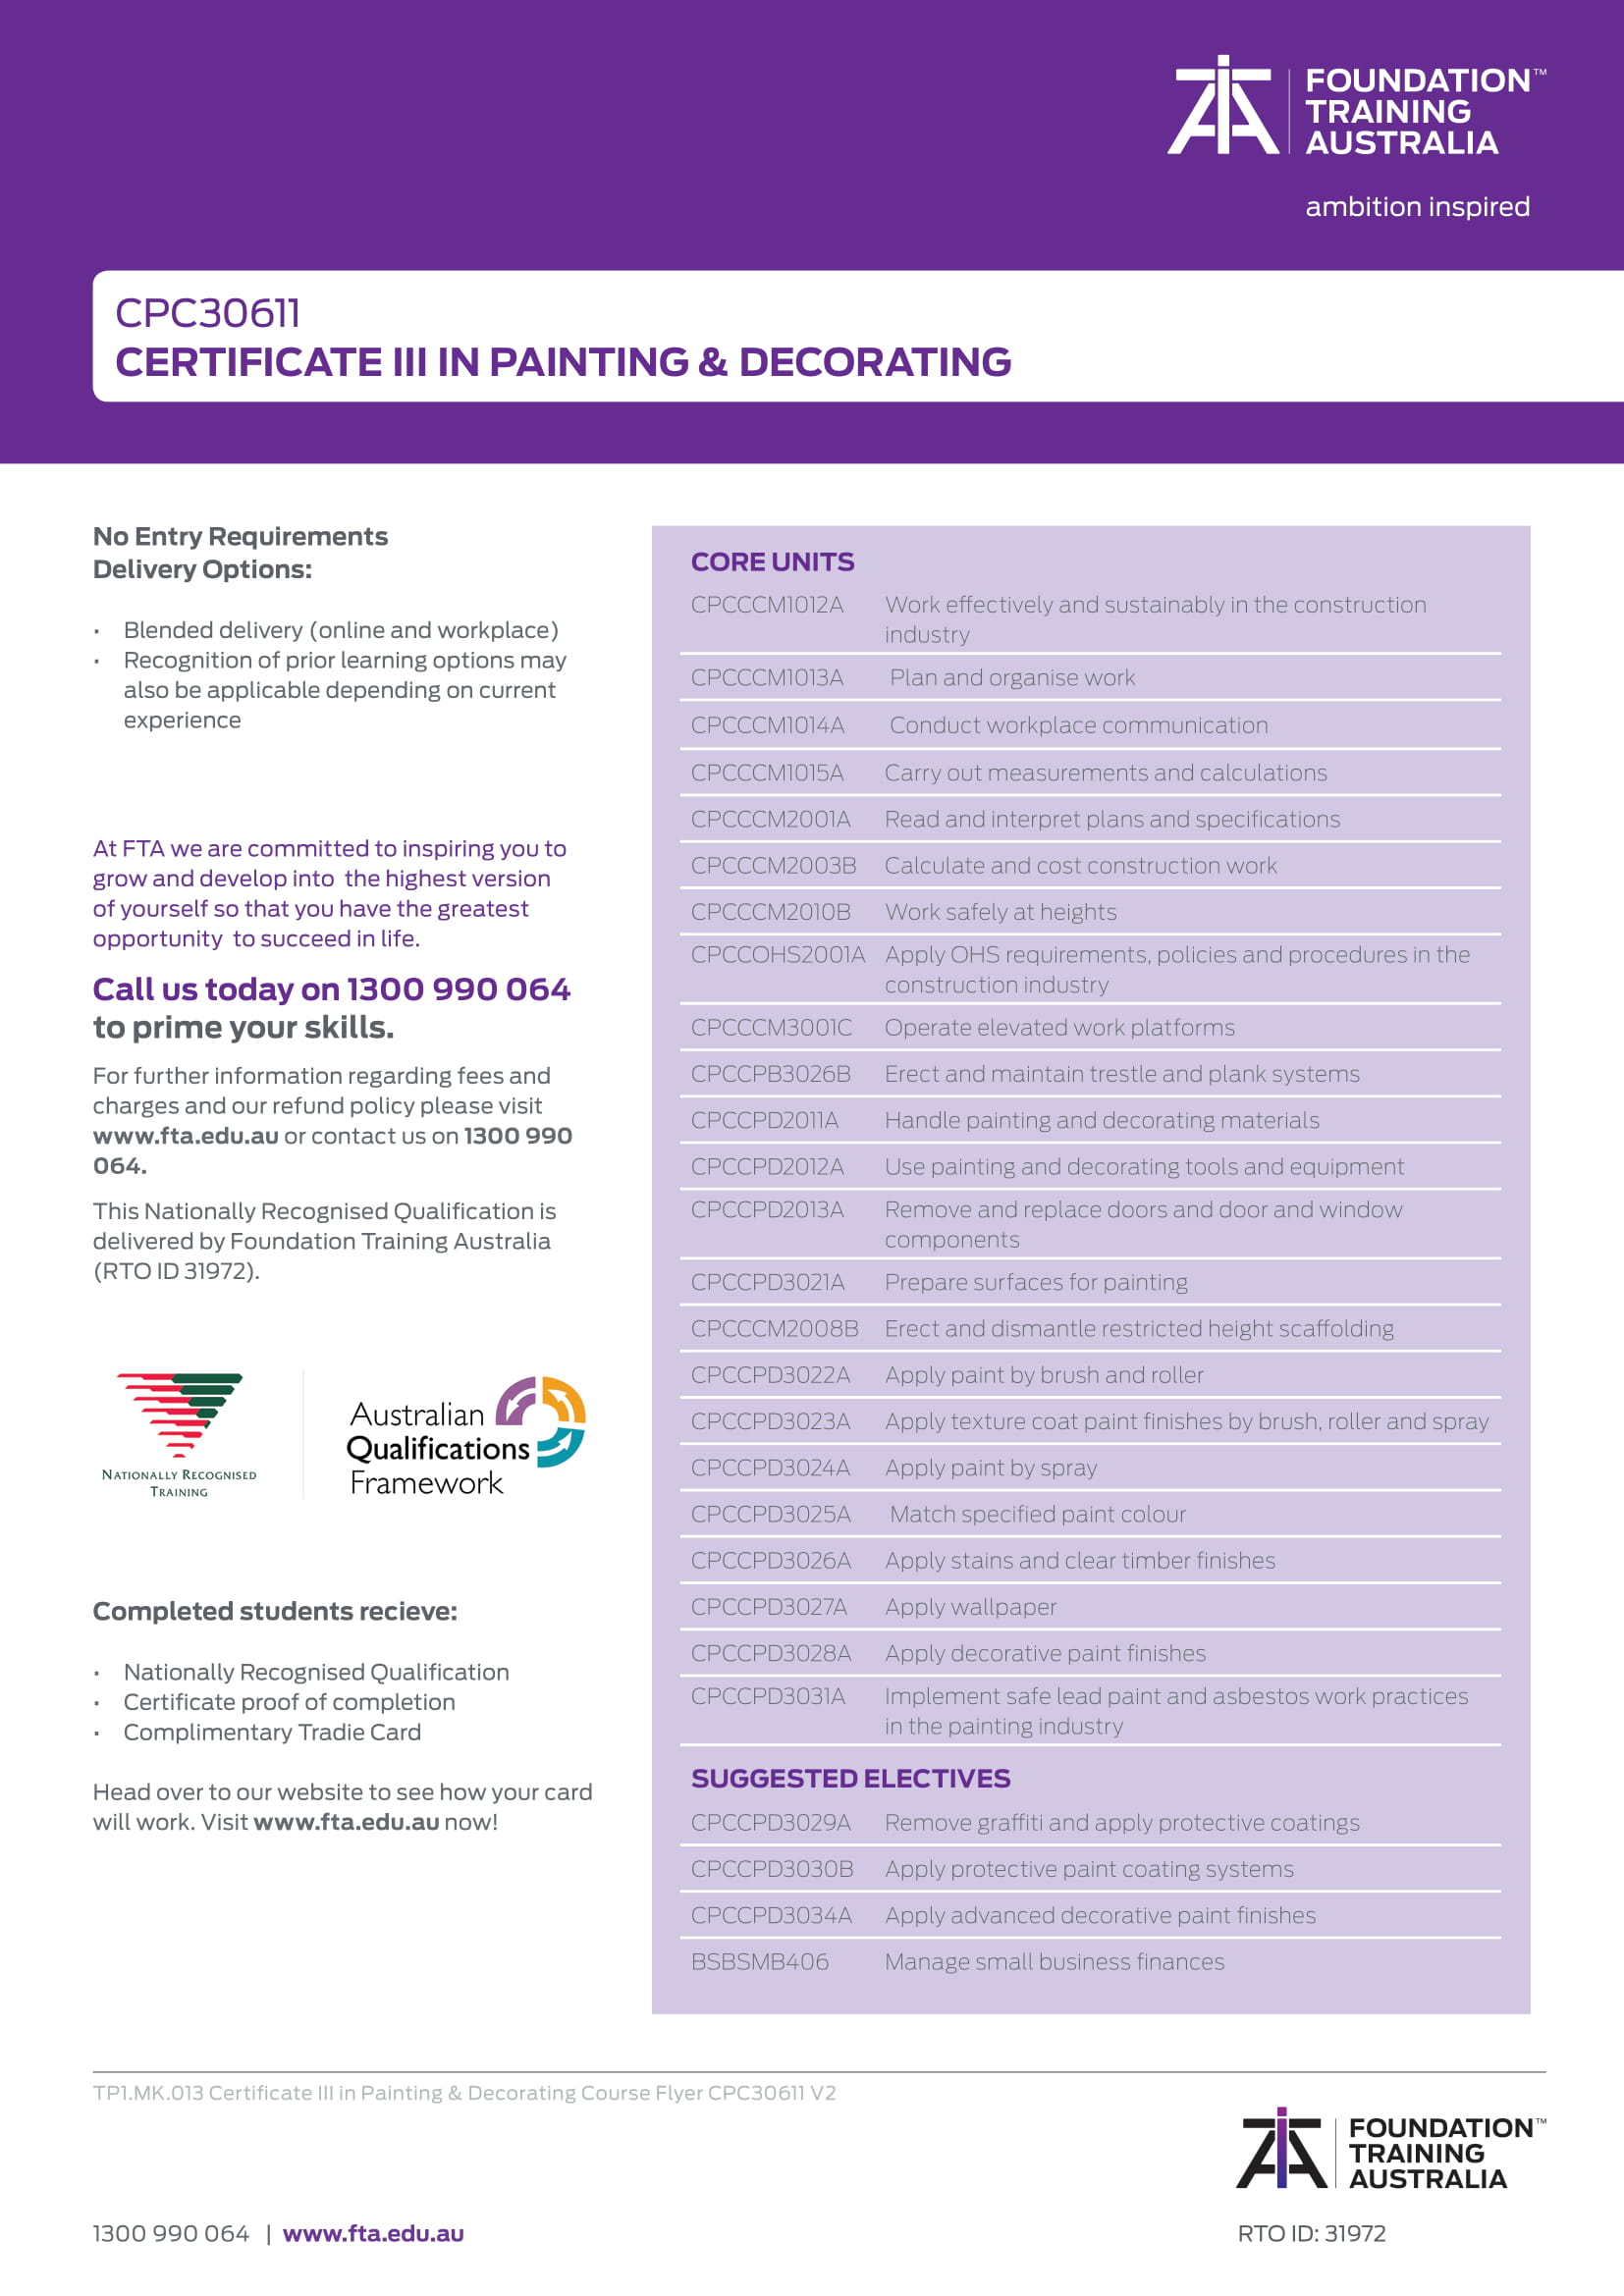 https://www.fta.edu.au/wp-content/uploads/2020/06/TP1.MK_.013-Certificate-III-in-Painting-Decorating-Course-Flyer-CPC30611-V2-DIGITAL-2.jpg